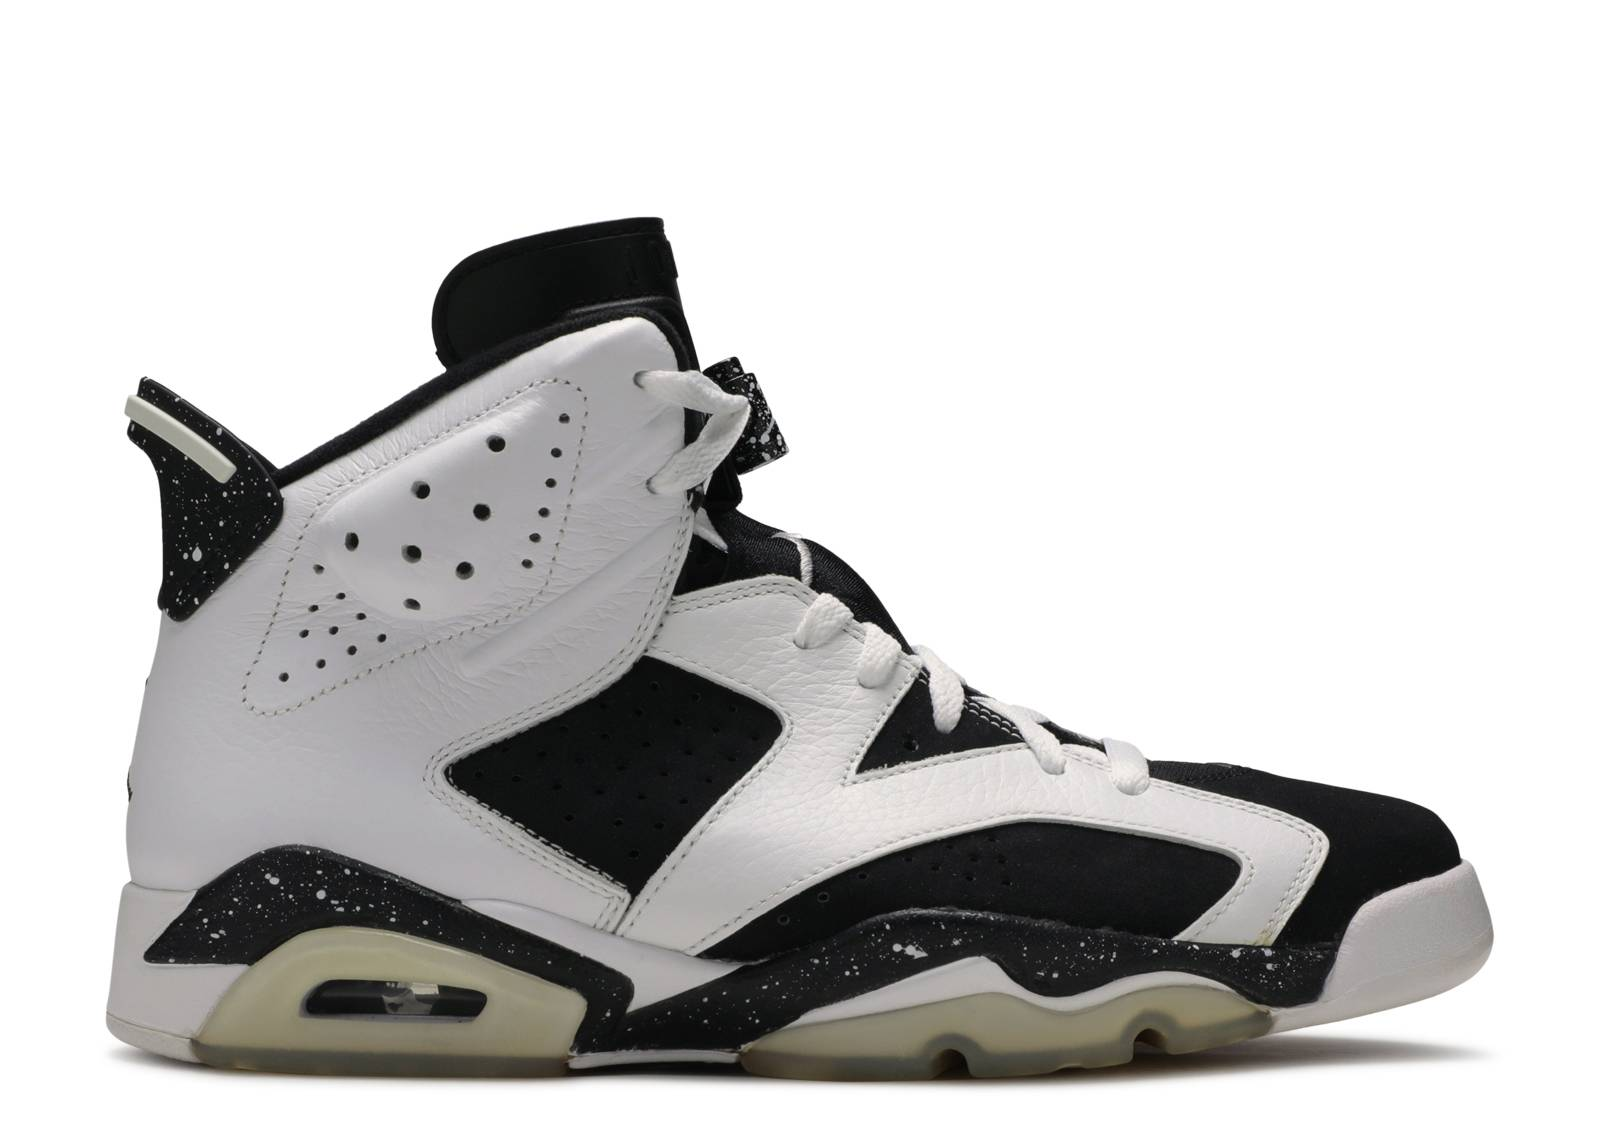 37ef45b79a2 ... usa air jordan 6 retro oreo air jordan 384664 101 white black flight  club b78b7 e1b25